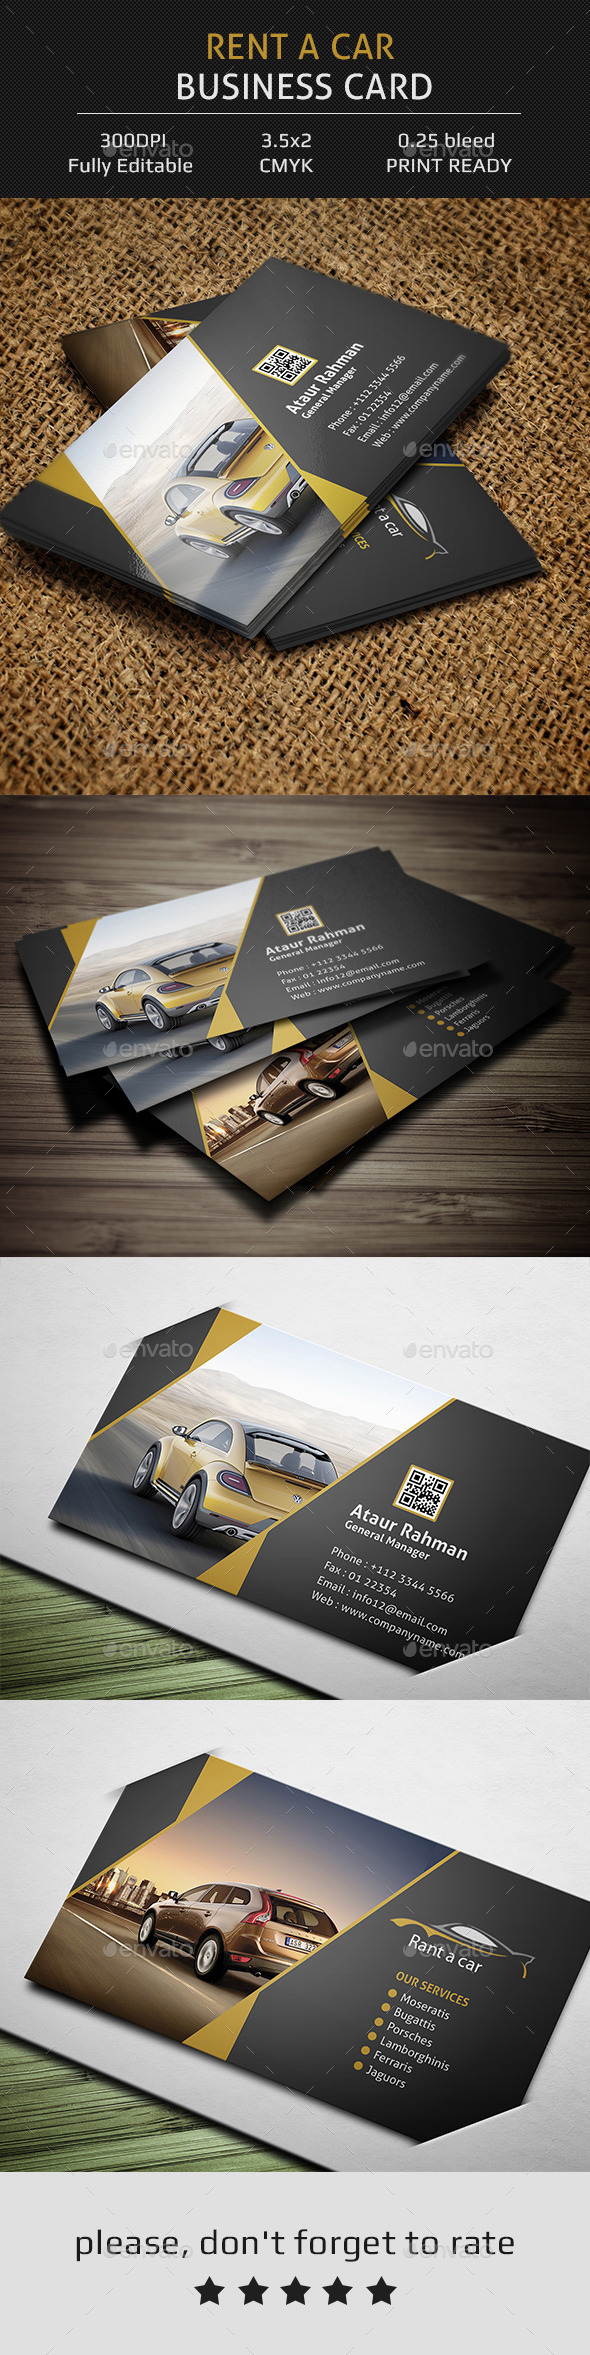 GraphicRiver Rent a Car Business Card 11861197